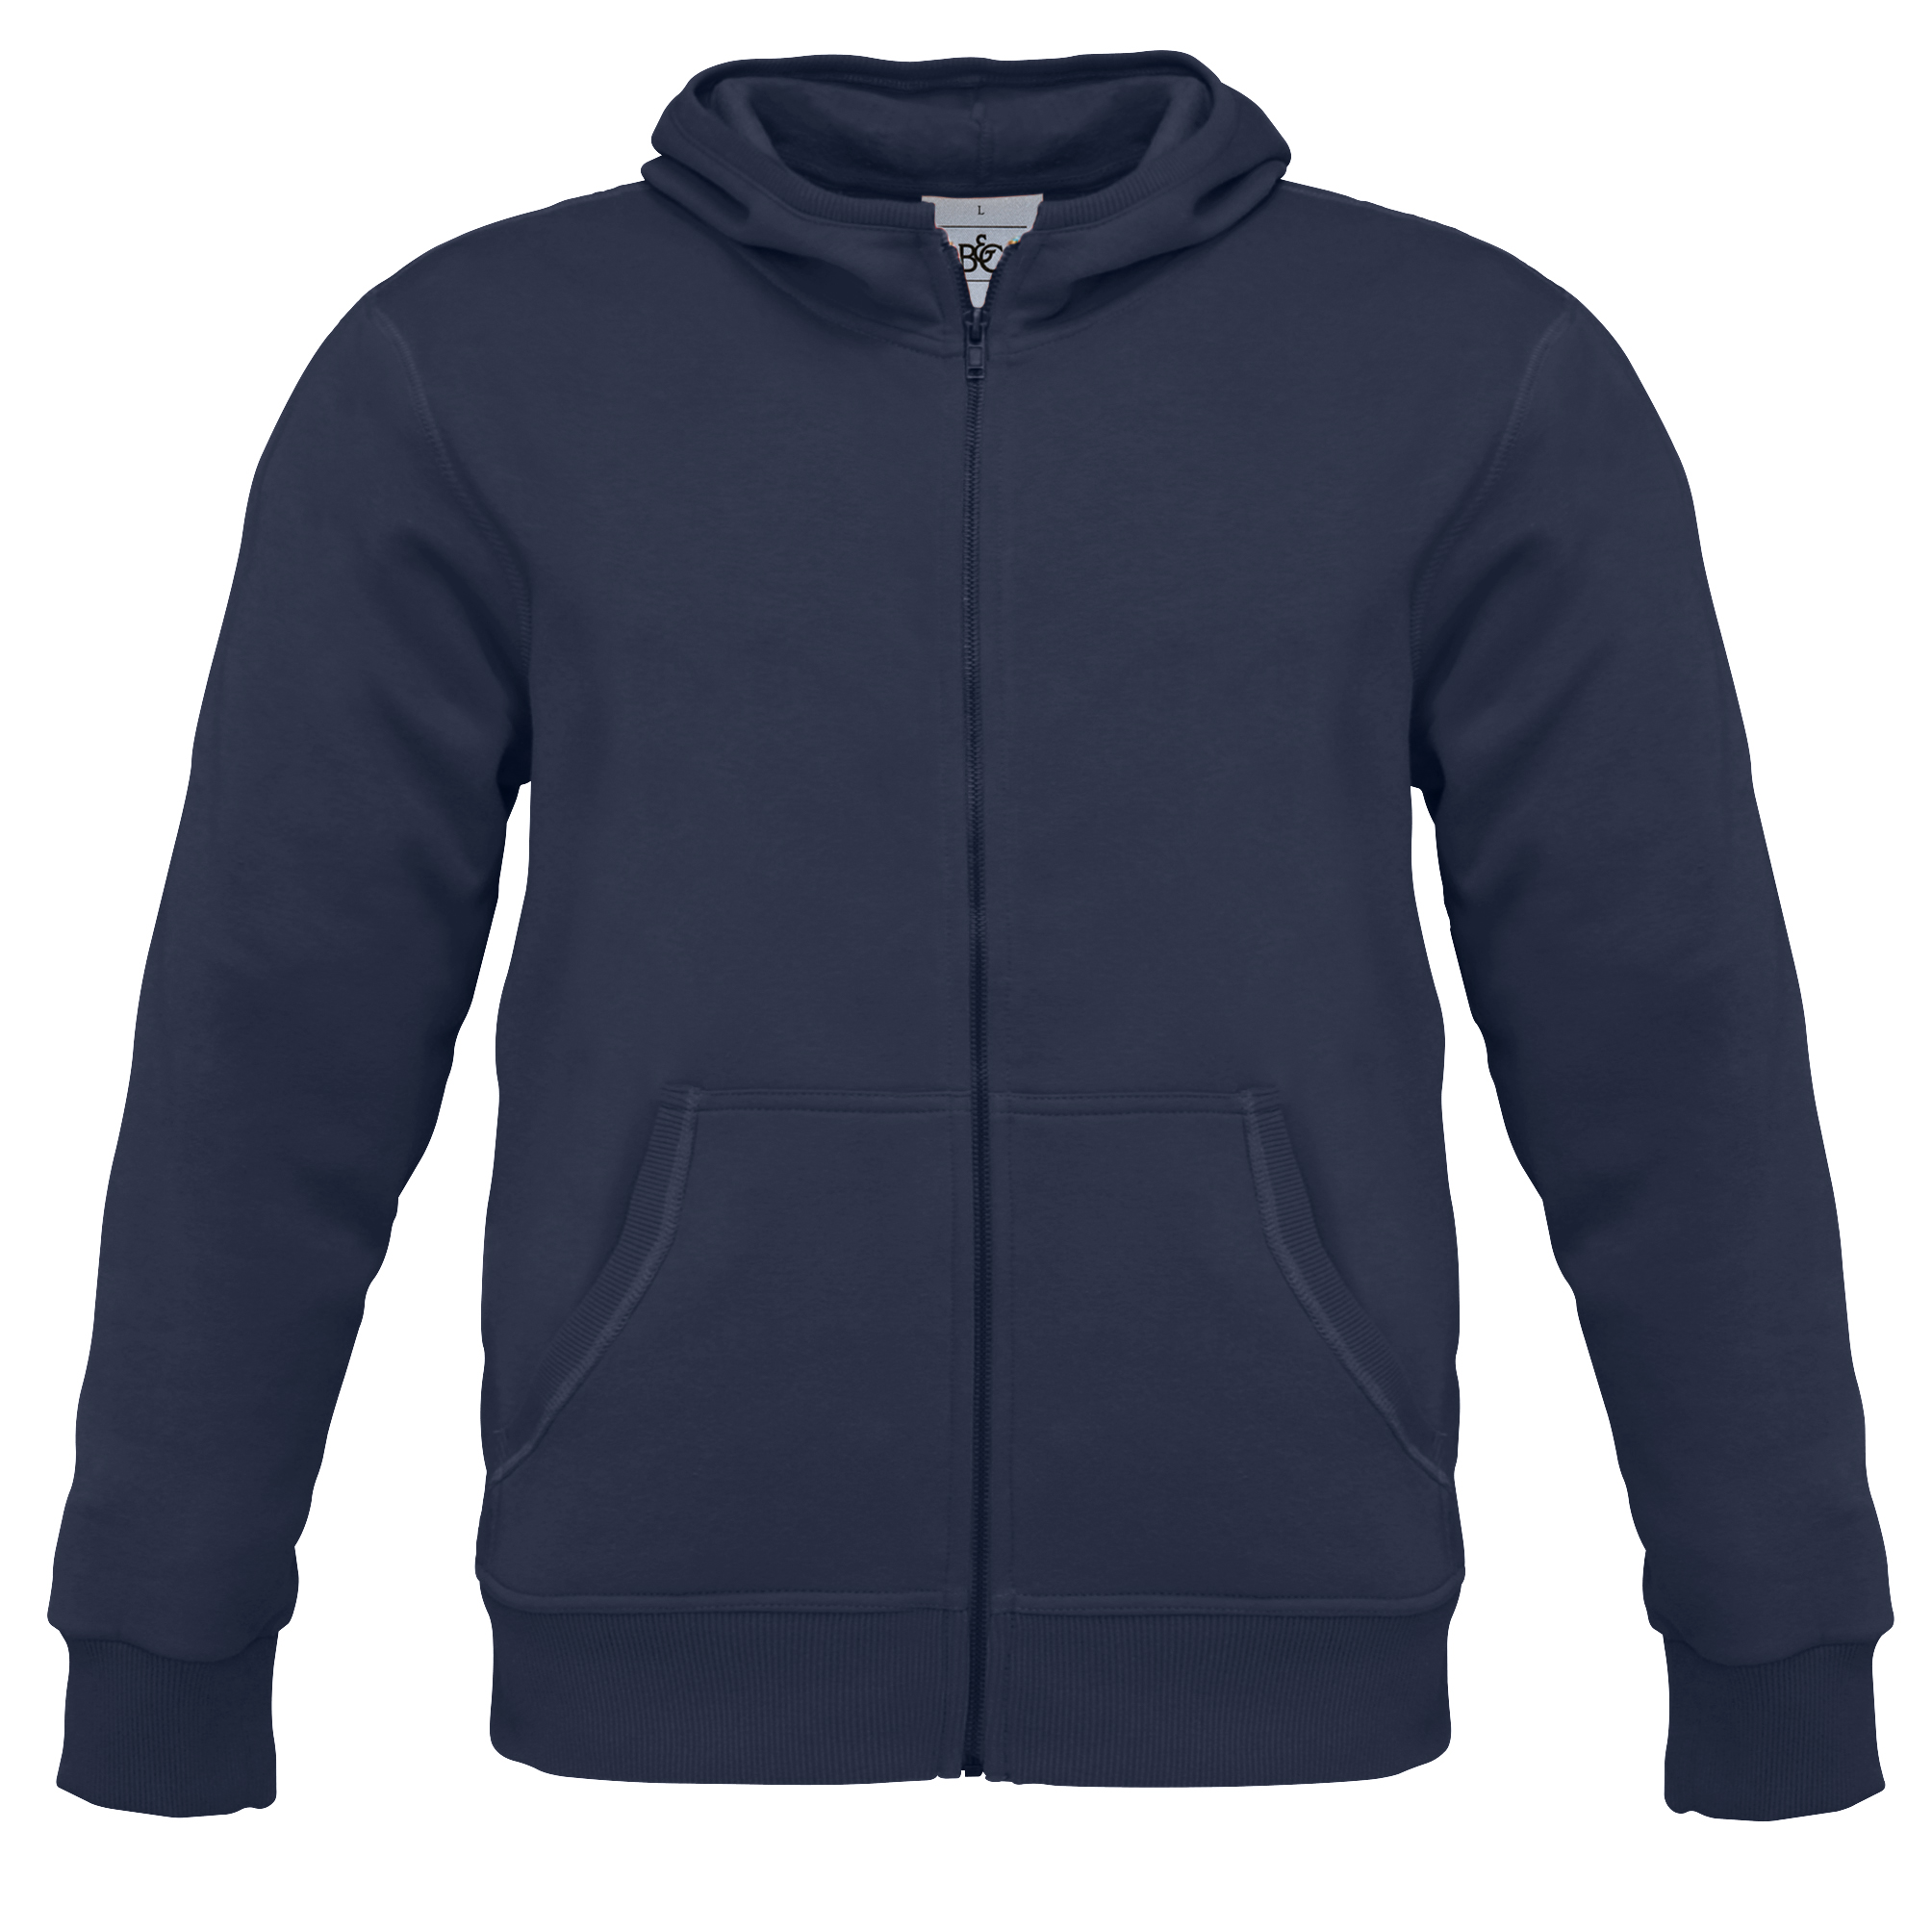 These plain zip hooded sweatshirts are versatile and can be worn to the gym and as casual daily wear. Pack any of our hoodies for warm ups and cool downs on game days. With our wide range of color selections, we have a hoodie for every team uniform. Stock up on hoodies .